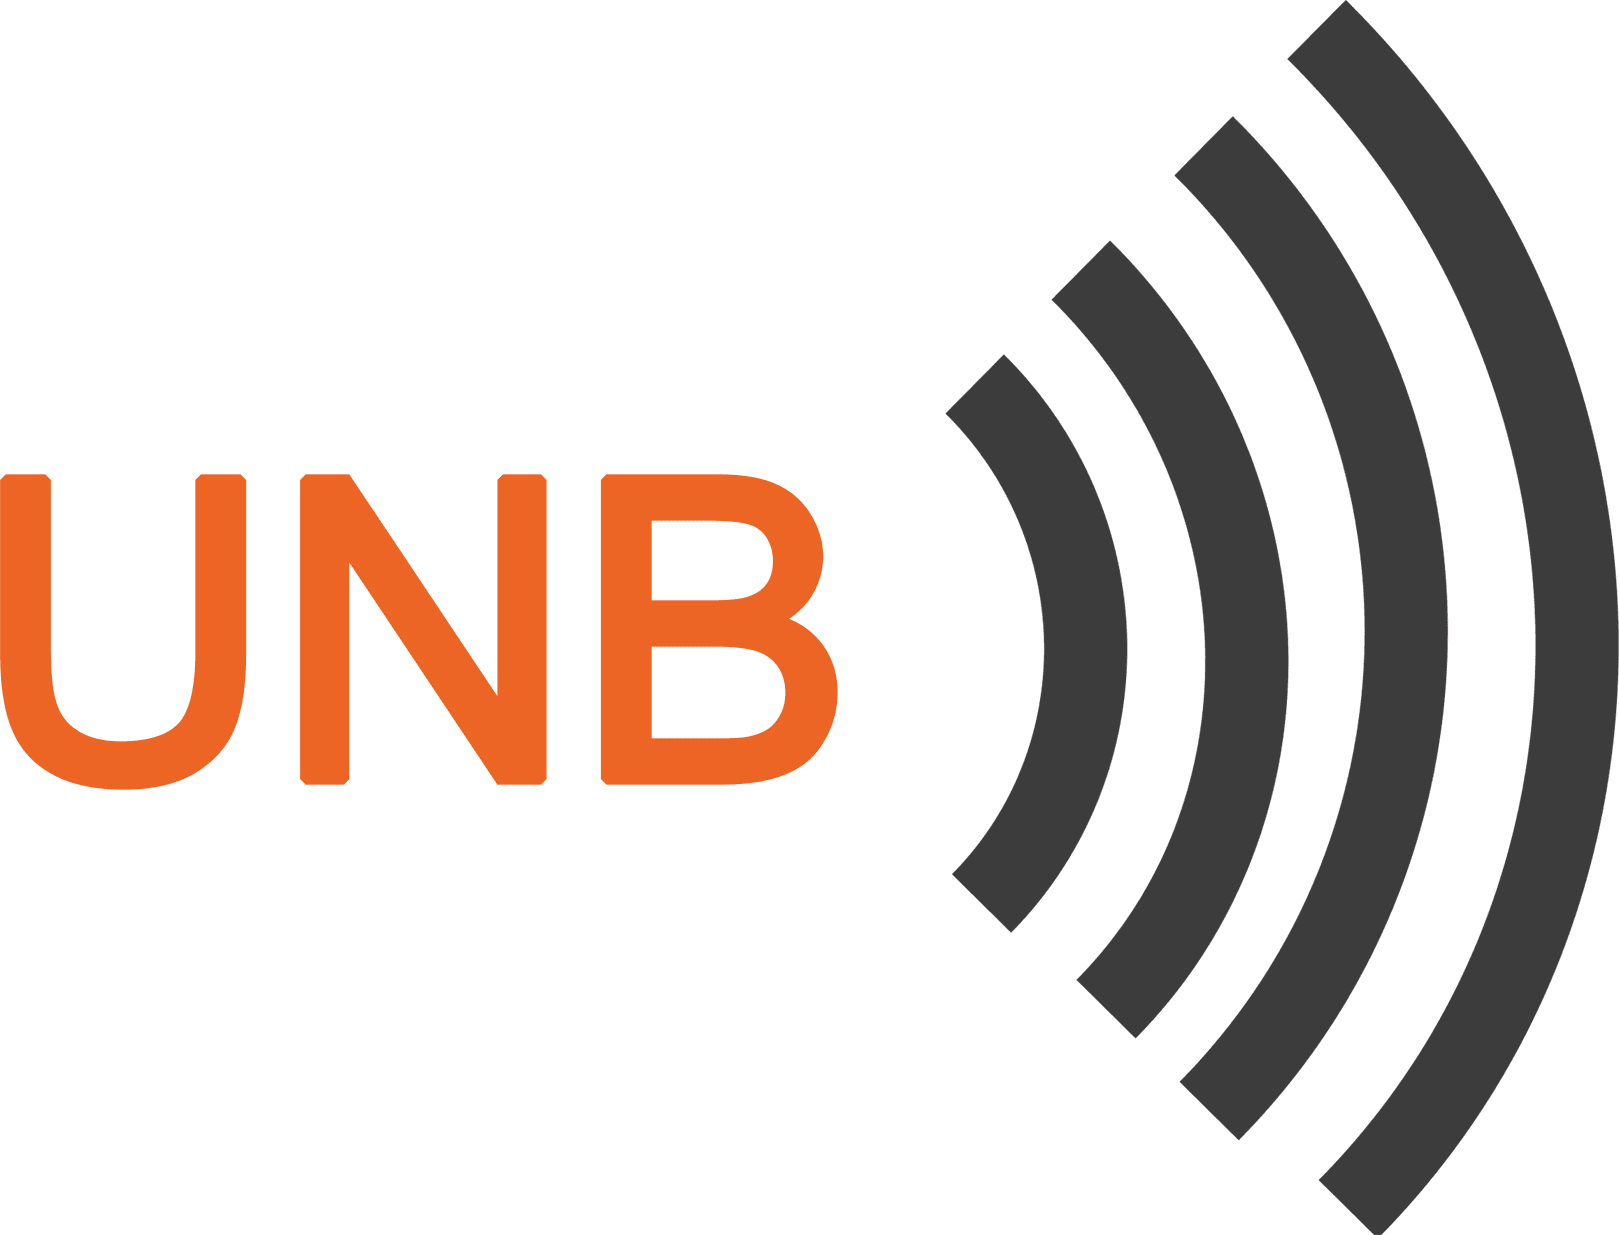 Logo of UNB